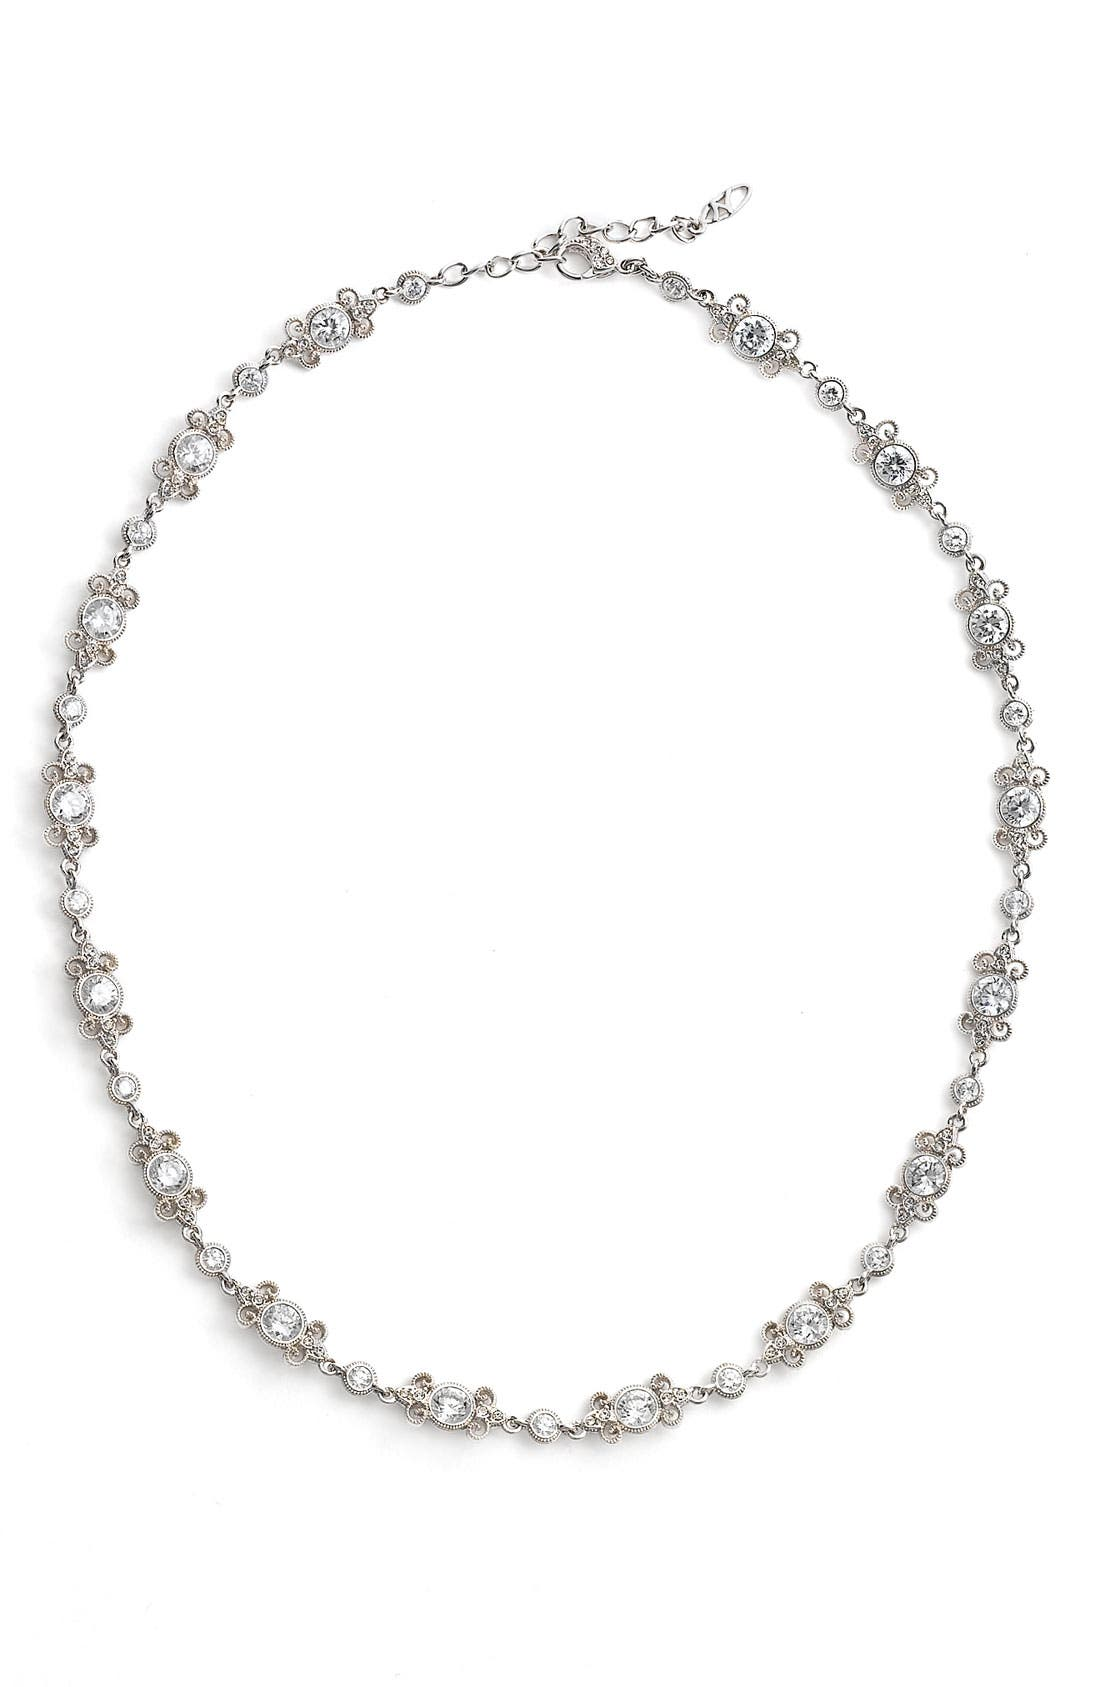 Main Image - Nadri 'Poesia' Crystal Necklace